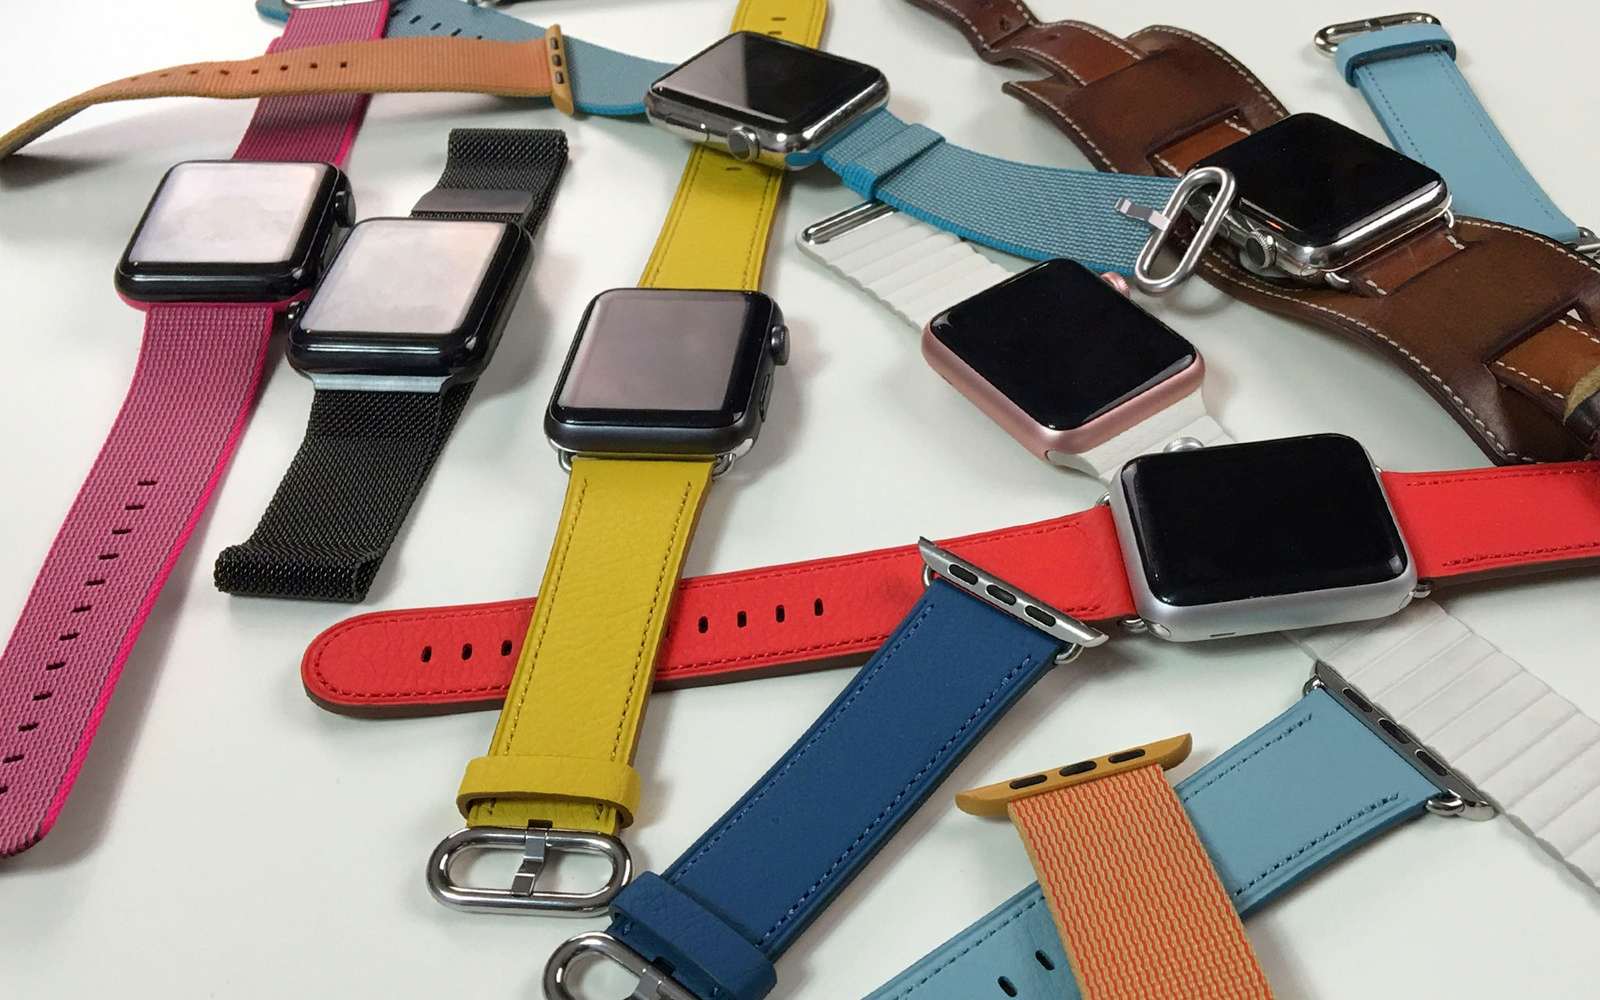 Apple-Watch-Series-2-Hands-On-Event-1